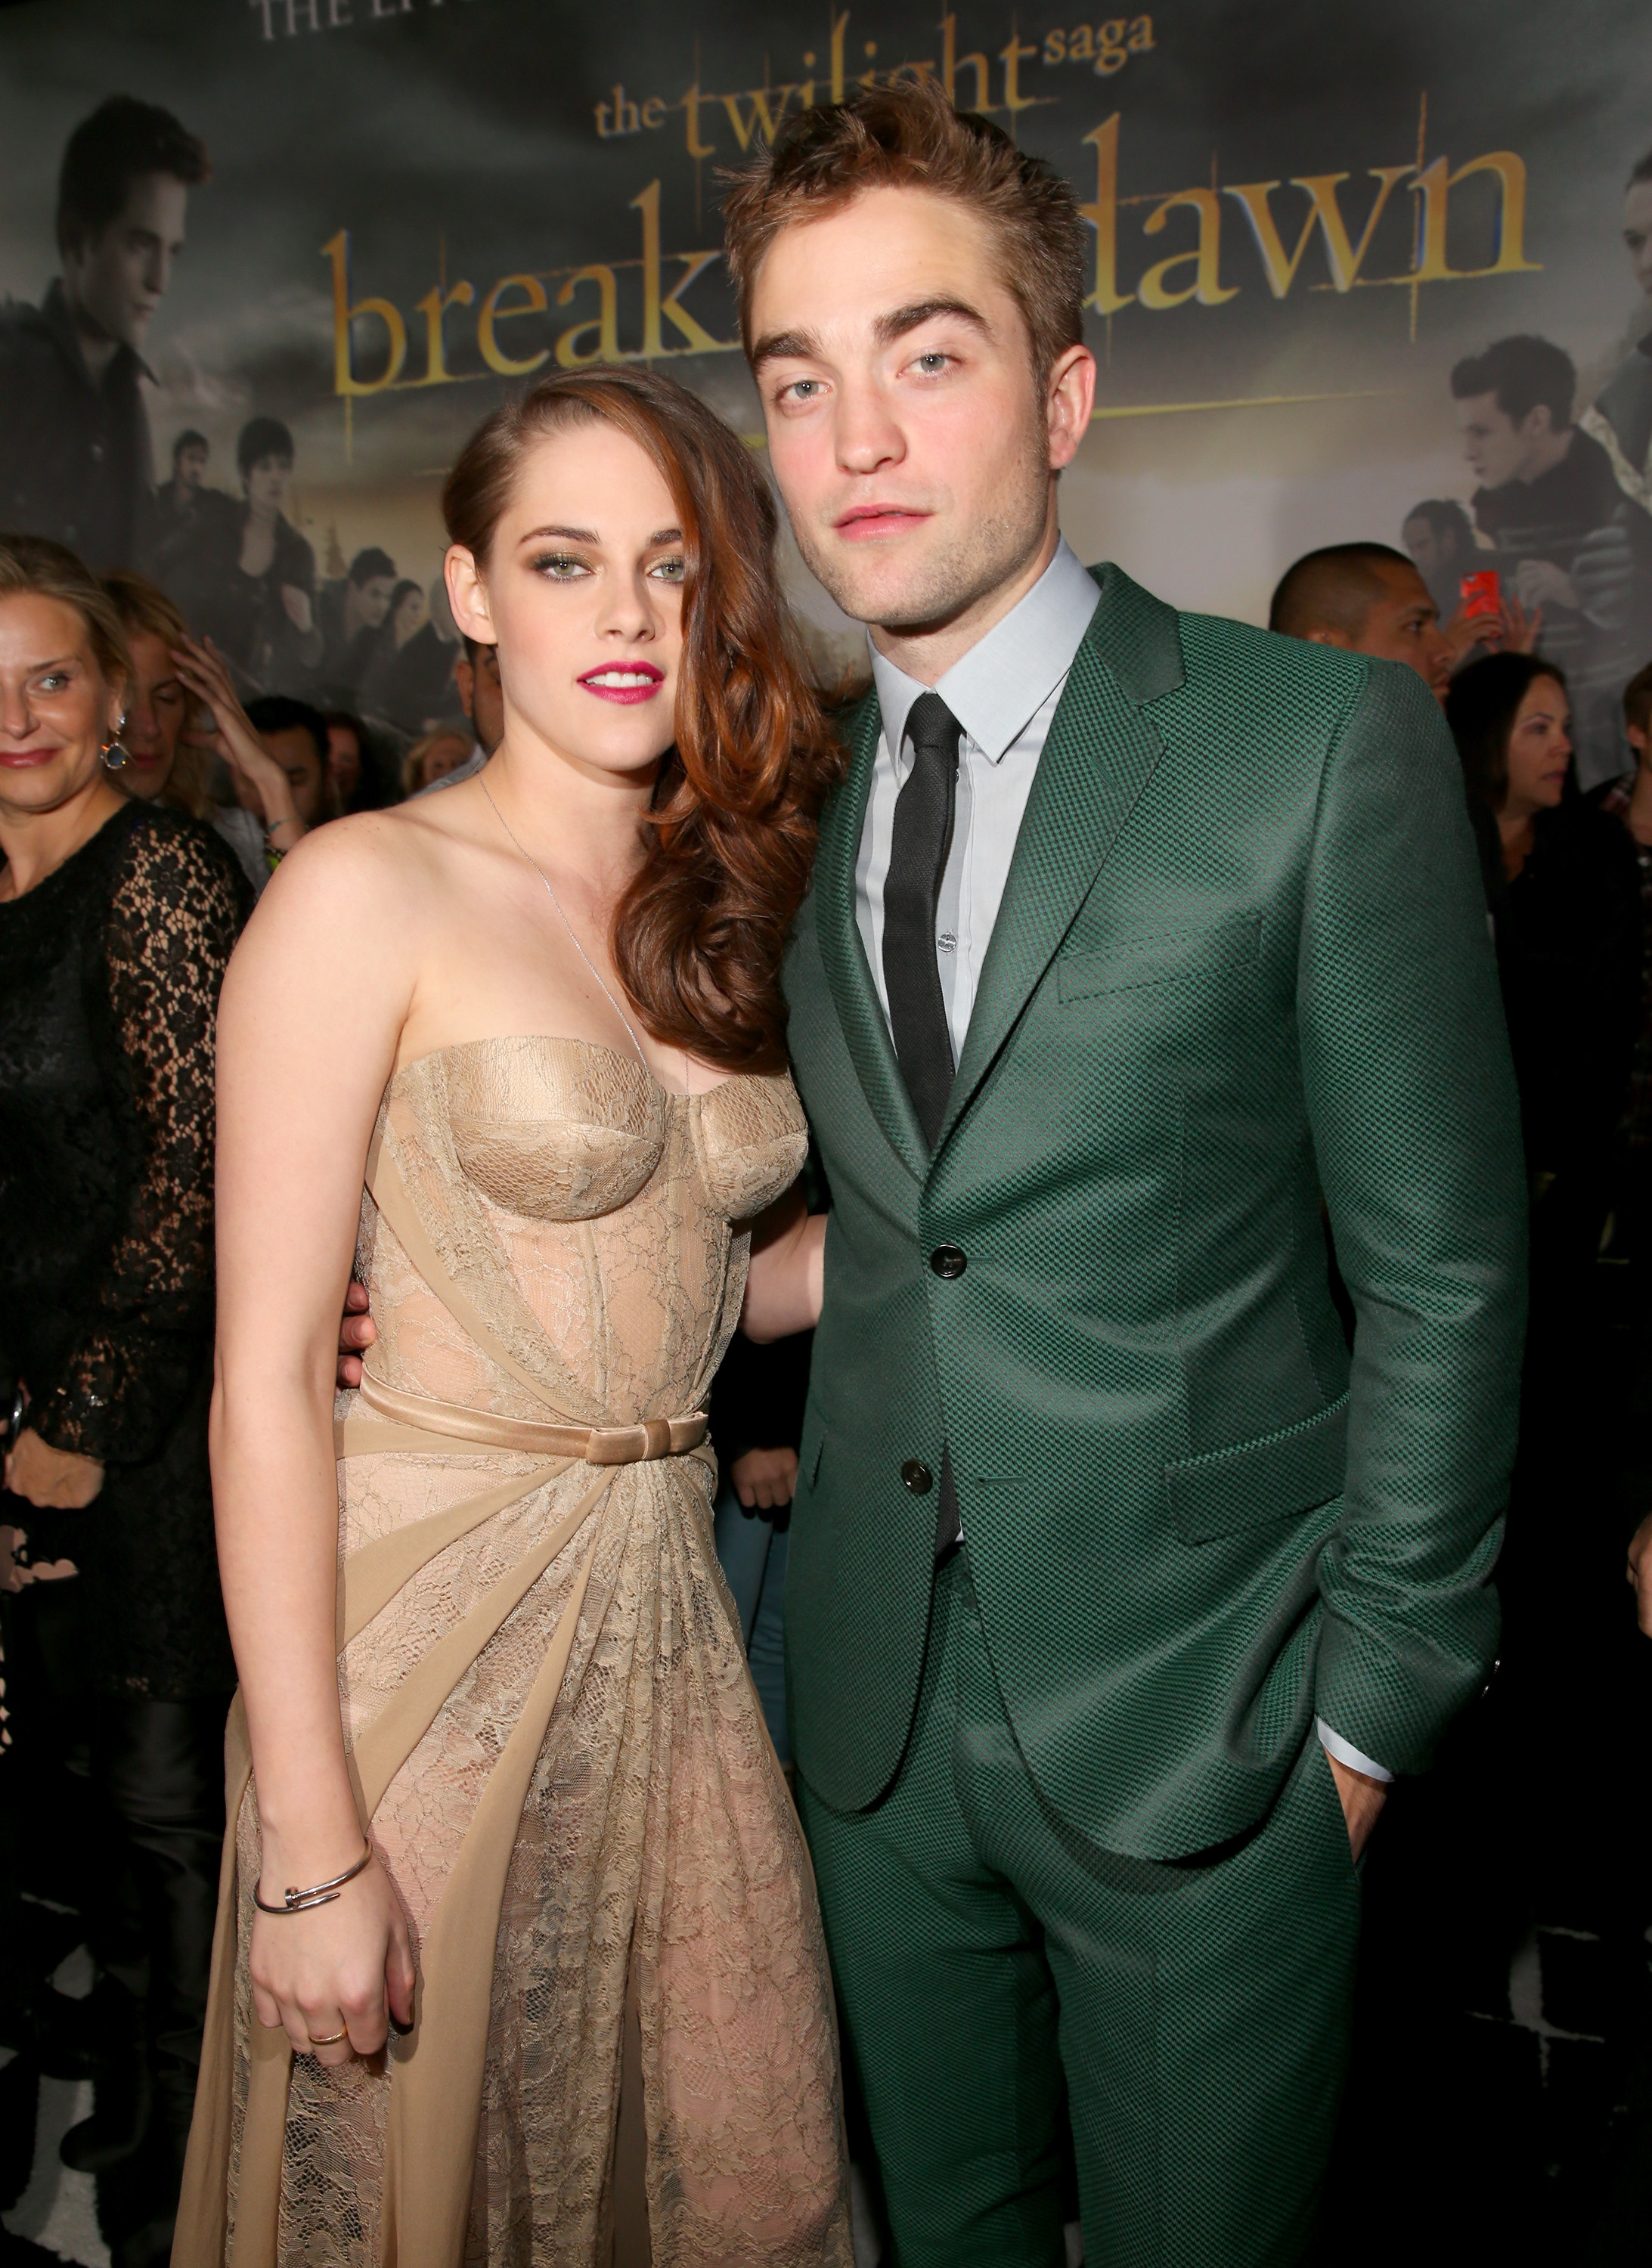 Kristen Stewart e Robert Pattinson di nuovo in Twilight?